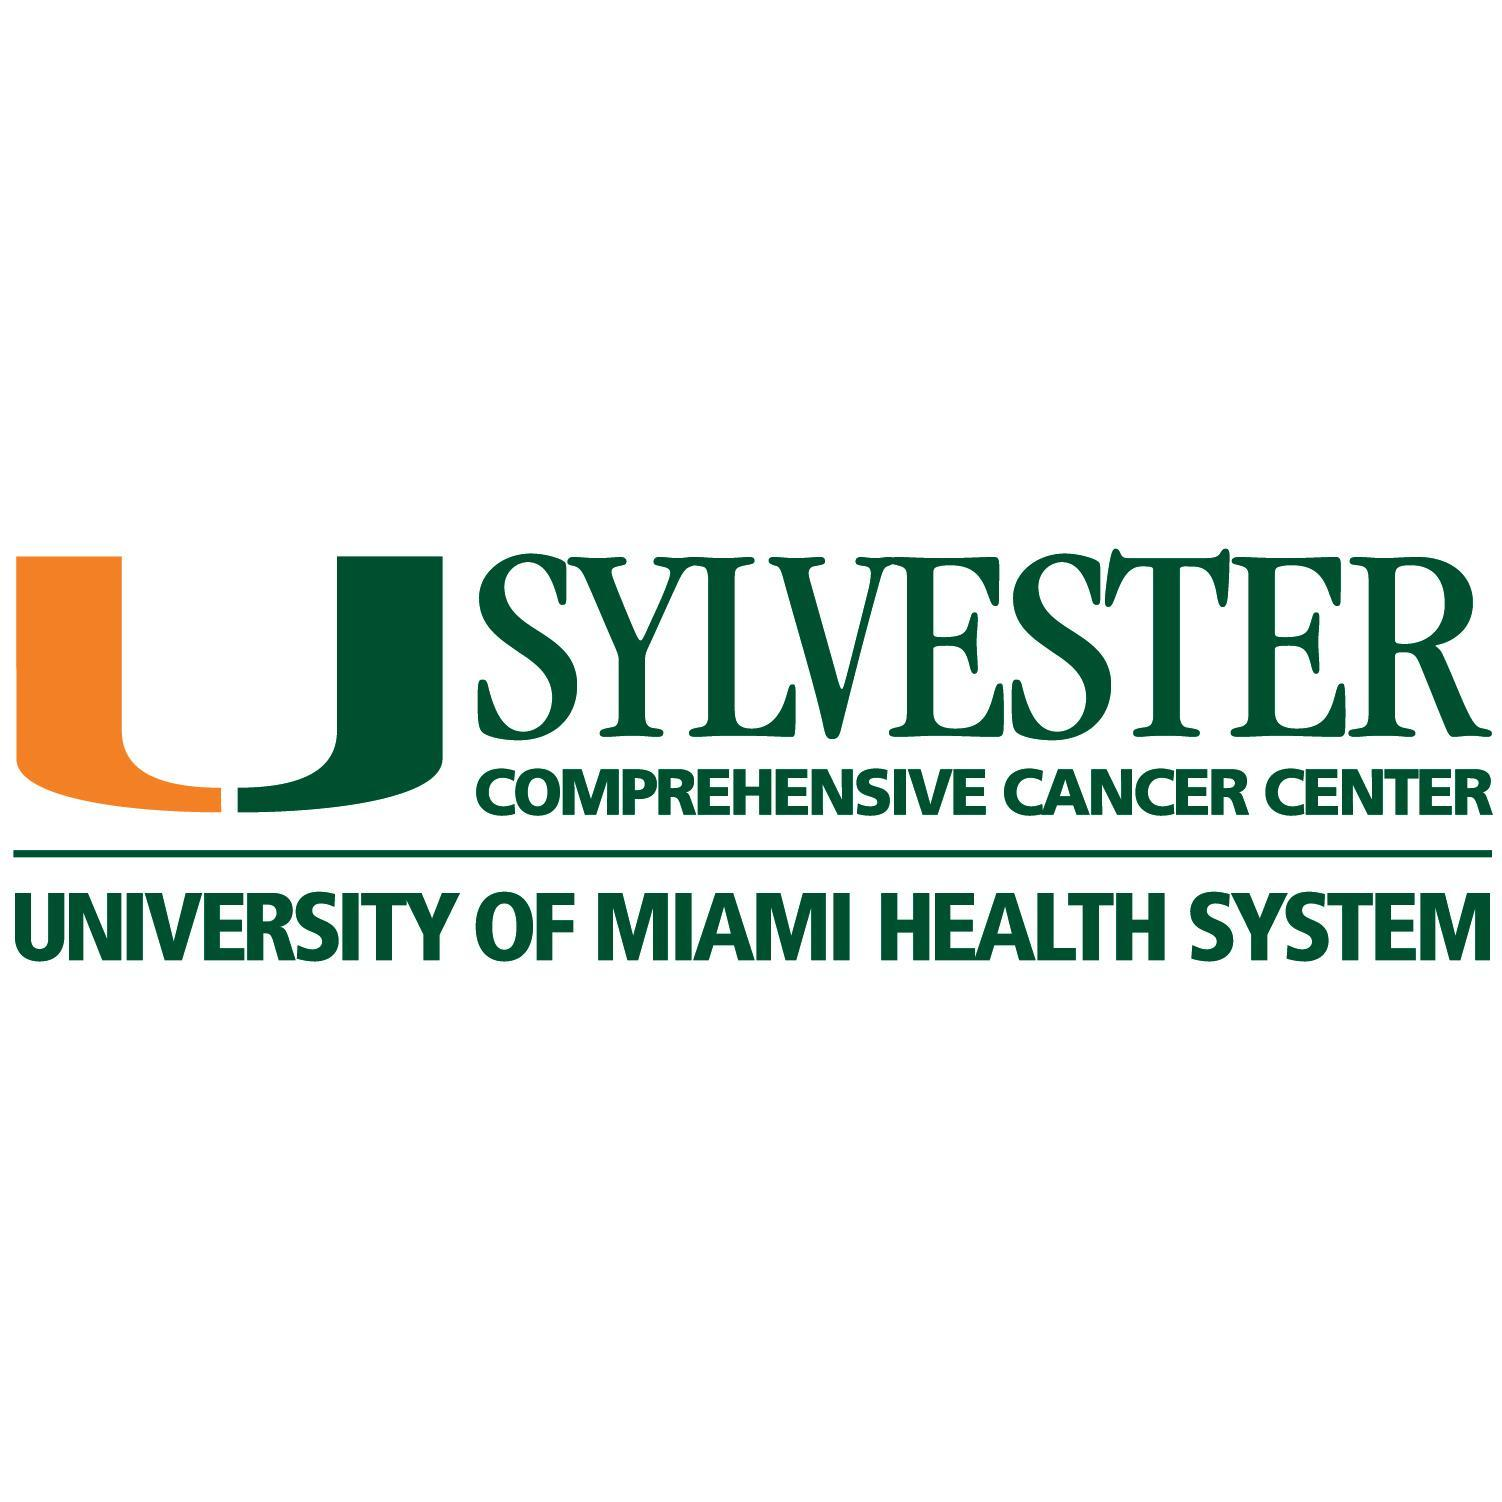 Sylvester Comprehensive Cancer Center